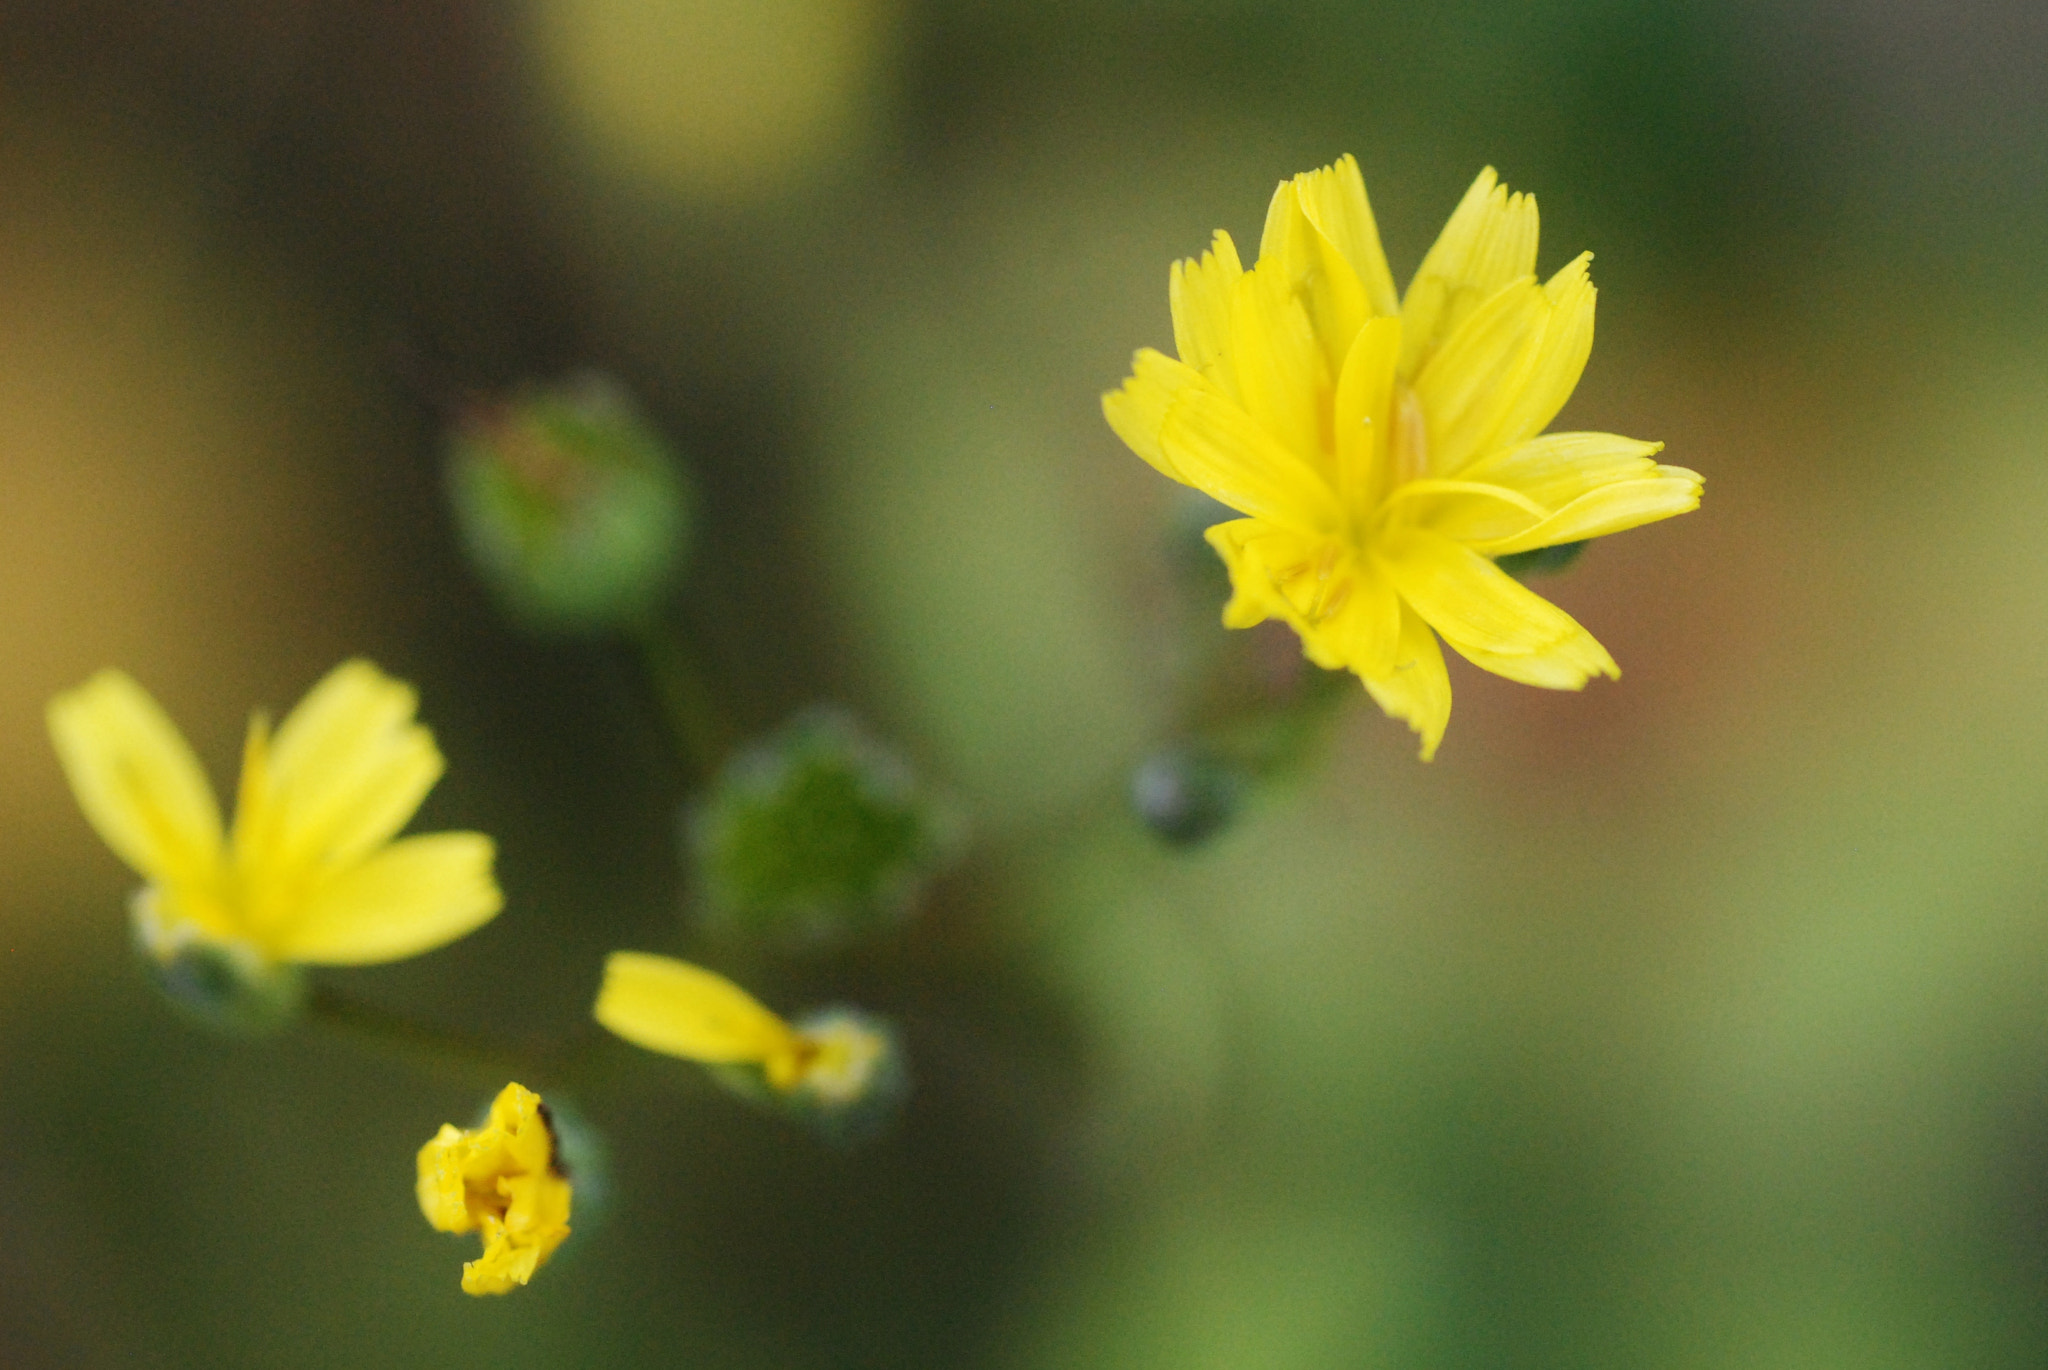 Photograph yellow flower by emily prouse on 500px